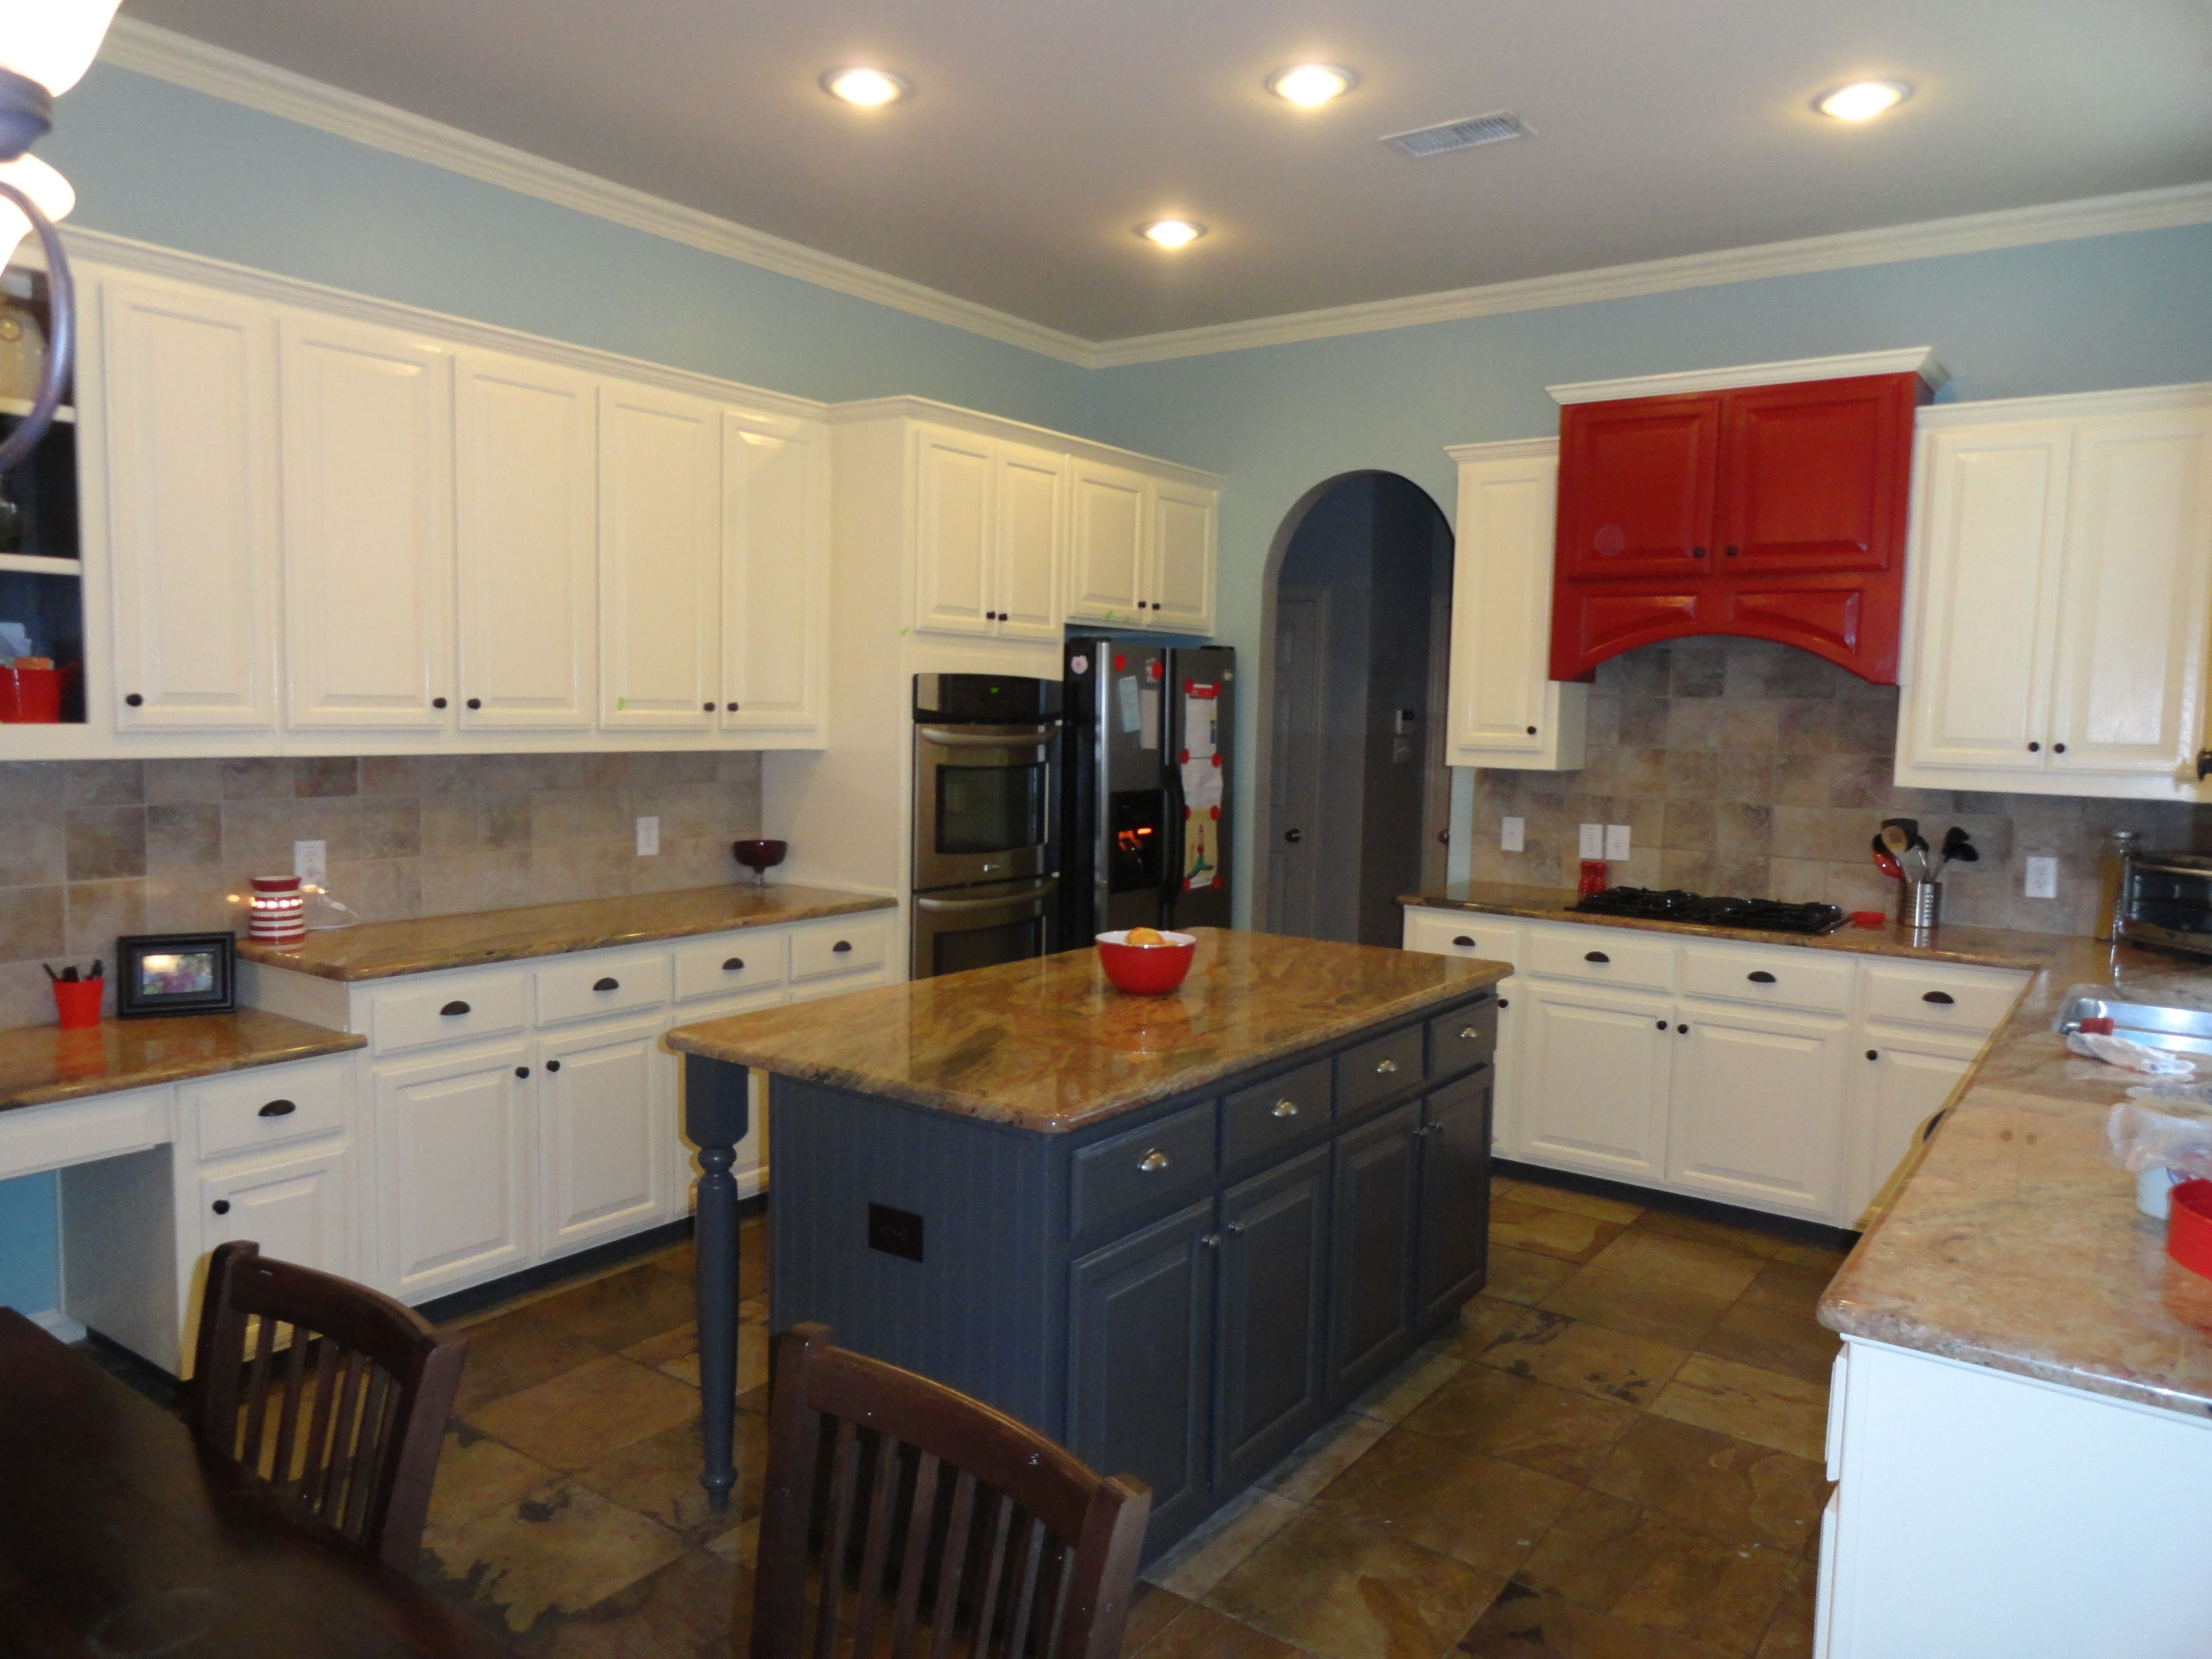 My Kitchen Makover Dull Wooden Cabinets Brown Walls With Drab Granite Turned To White Cabinets Blue Grey Walls Blue Grey Walls Brown Walls Wooden Cabinets